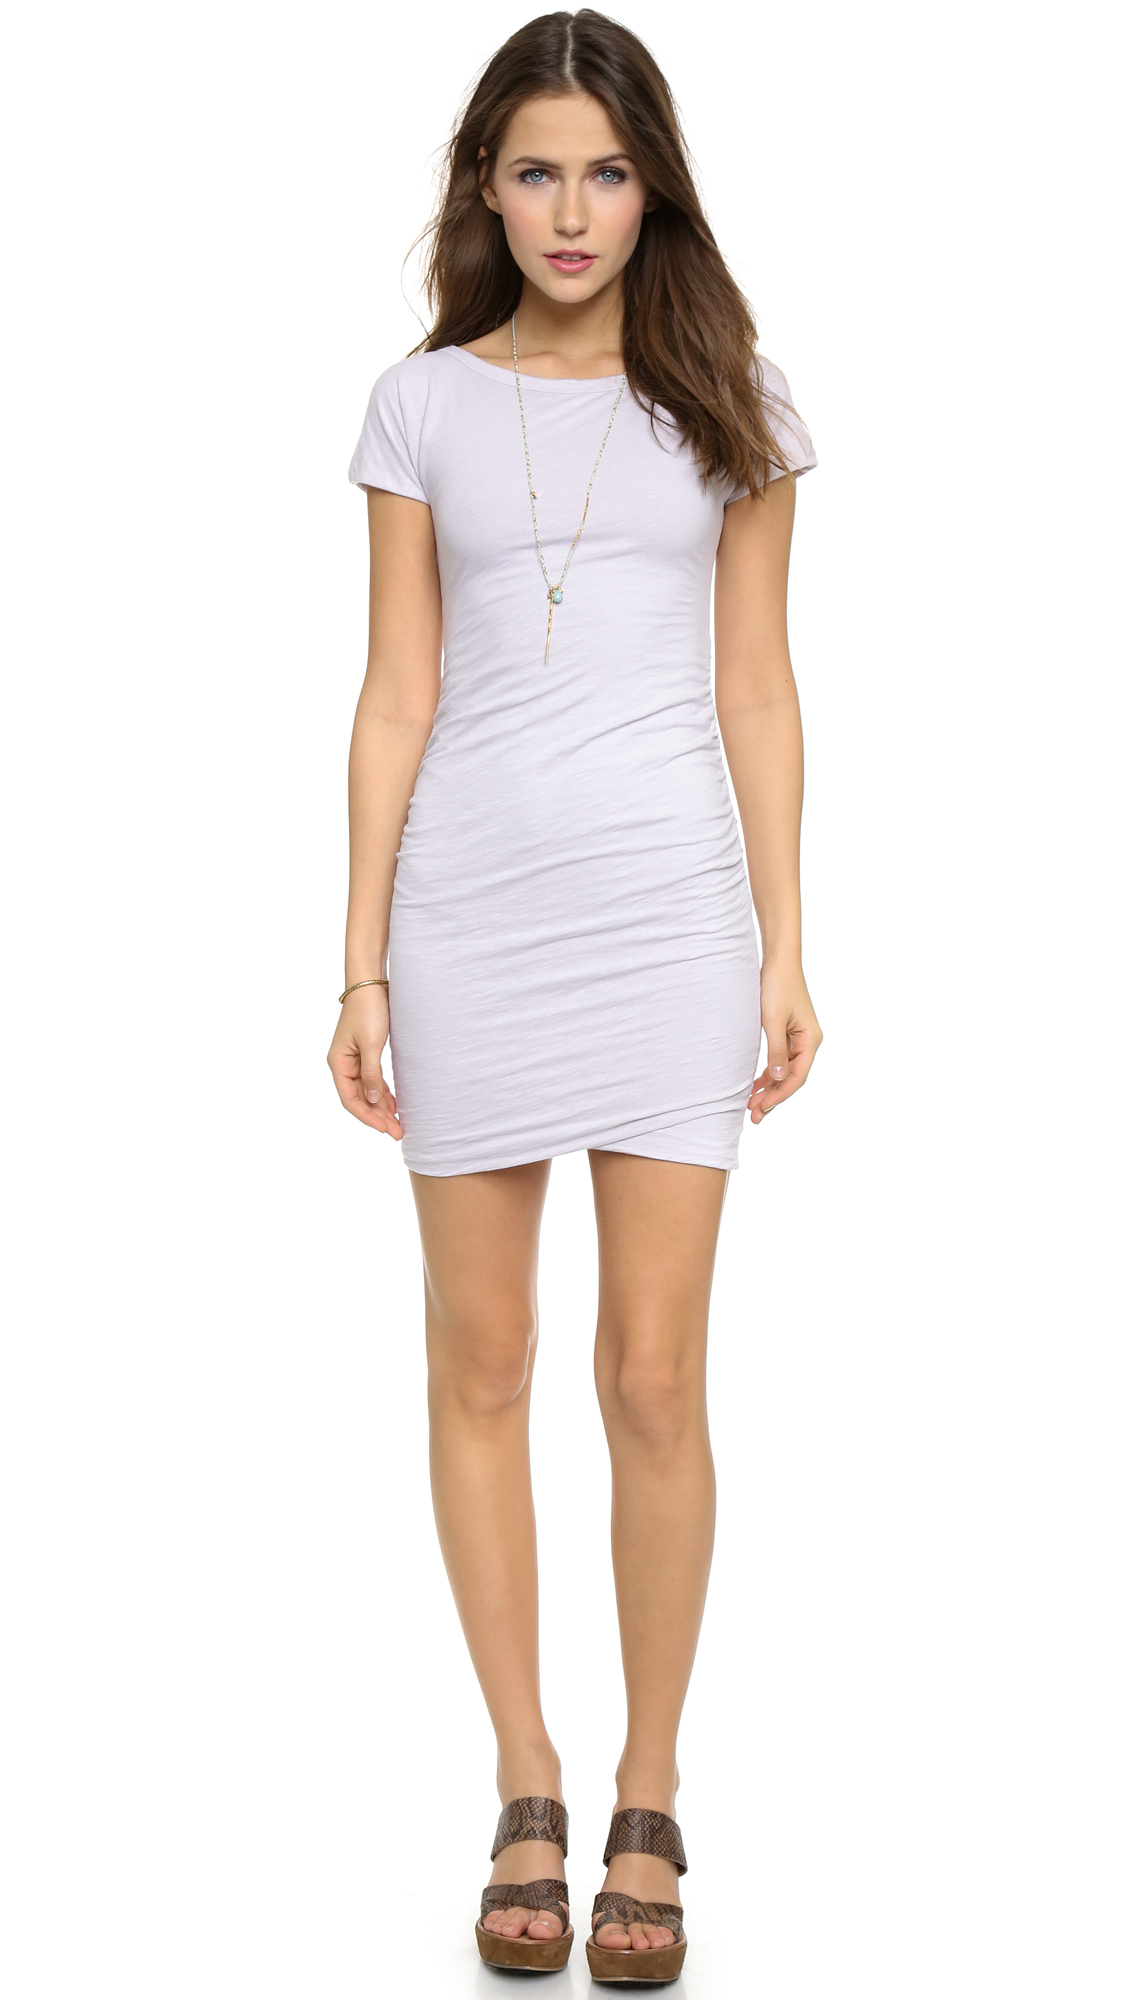 bdadc29ac61cd Lyst - Sundry Boat Neck Ruched Dress - Grey in Gray